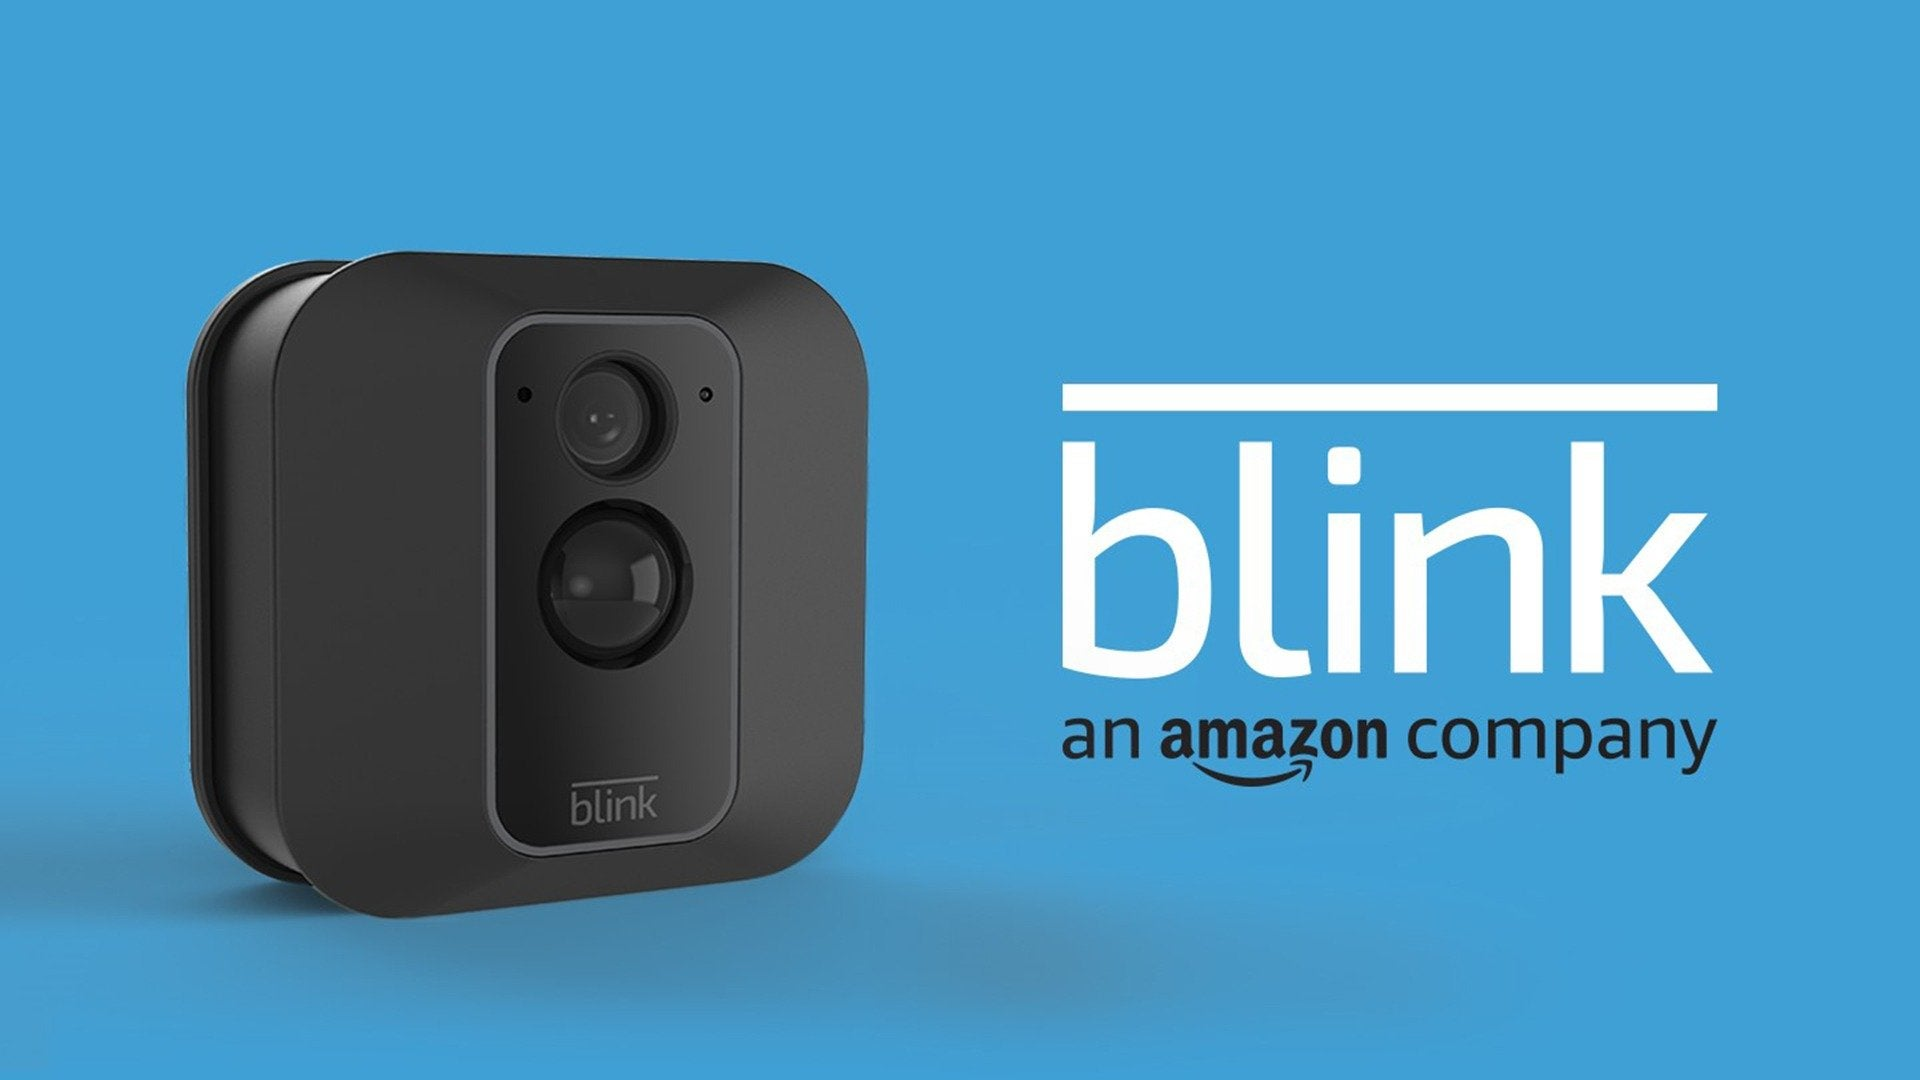 BLINK: Affordable, Wire-Free, Home Security Cameras - Special Offer!